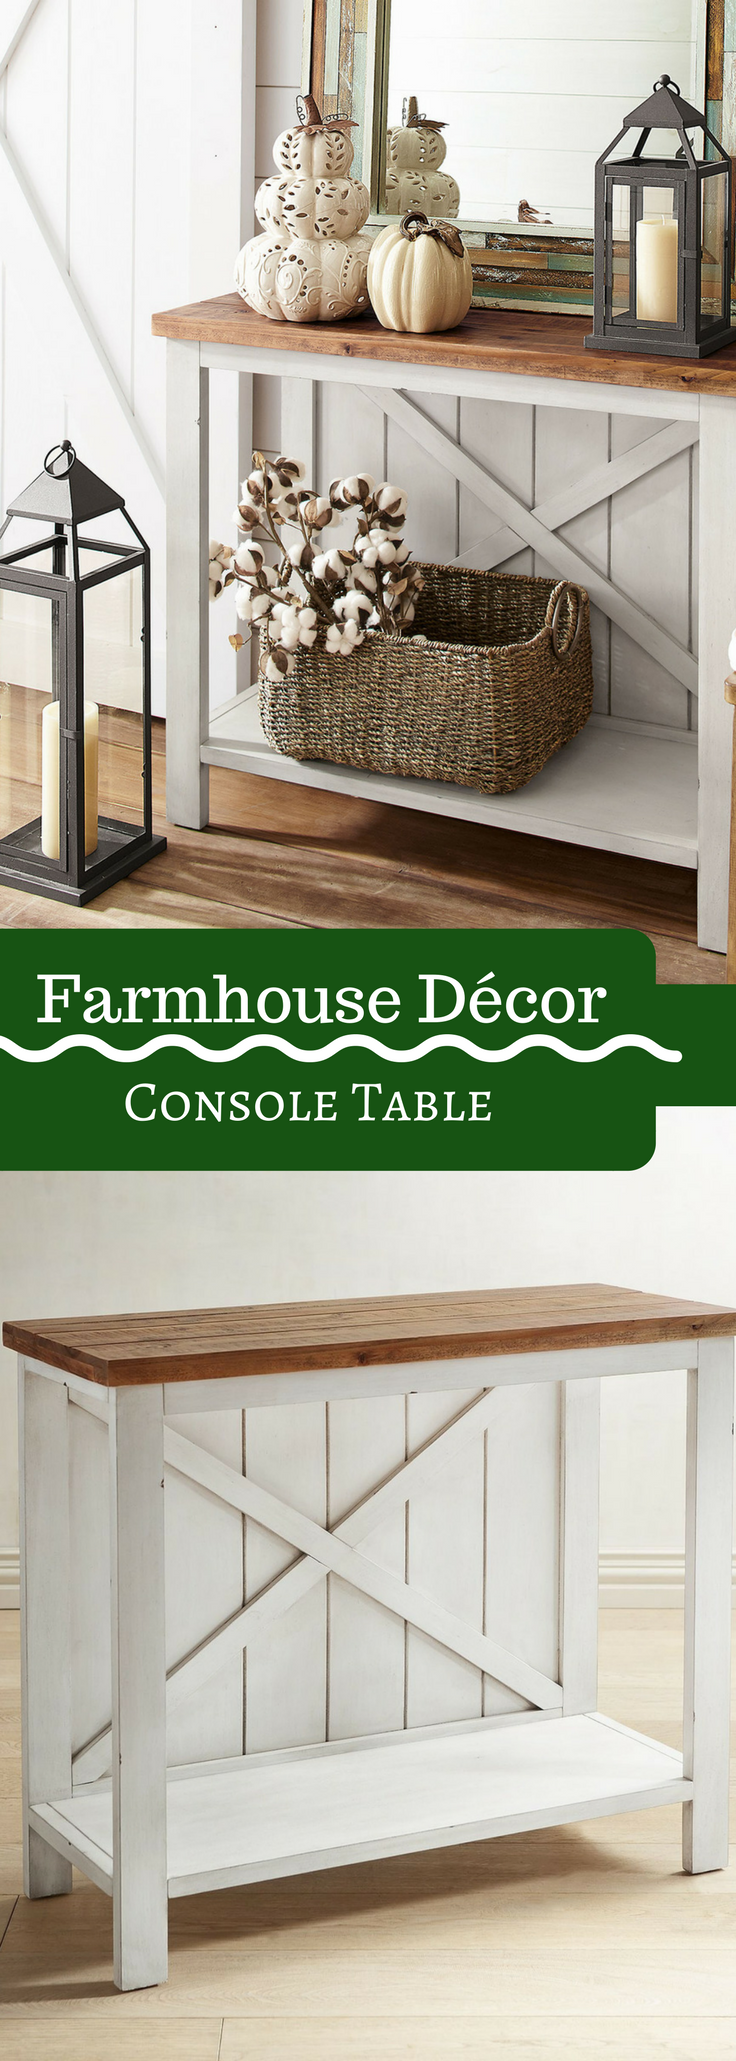 Small White Farmhouse Console Table- Farmhouse Décor